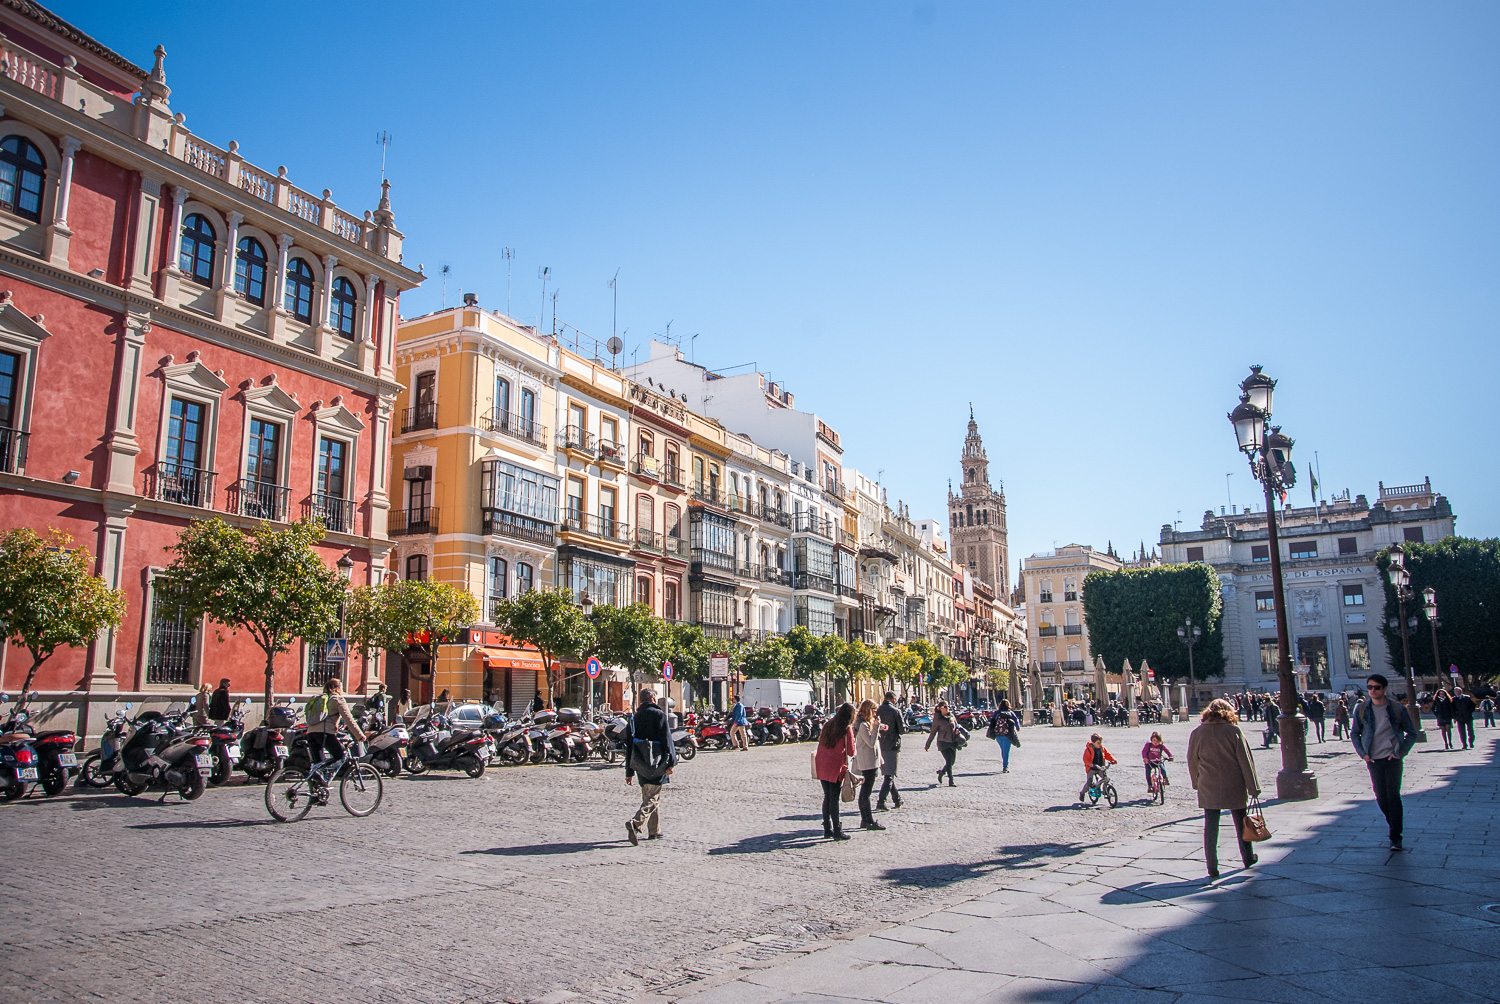 San Francisco Square (  Plaza de San Francisco) with Giralda Tower (ancient minaret of the old mosque of Sevilla) The pink building was the Royal Court in the 16th century